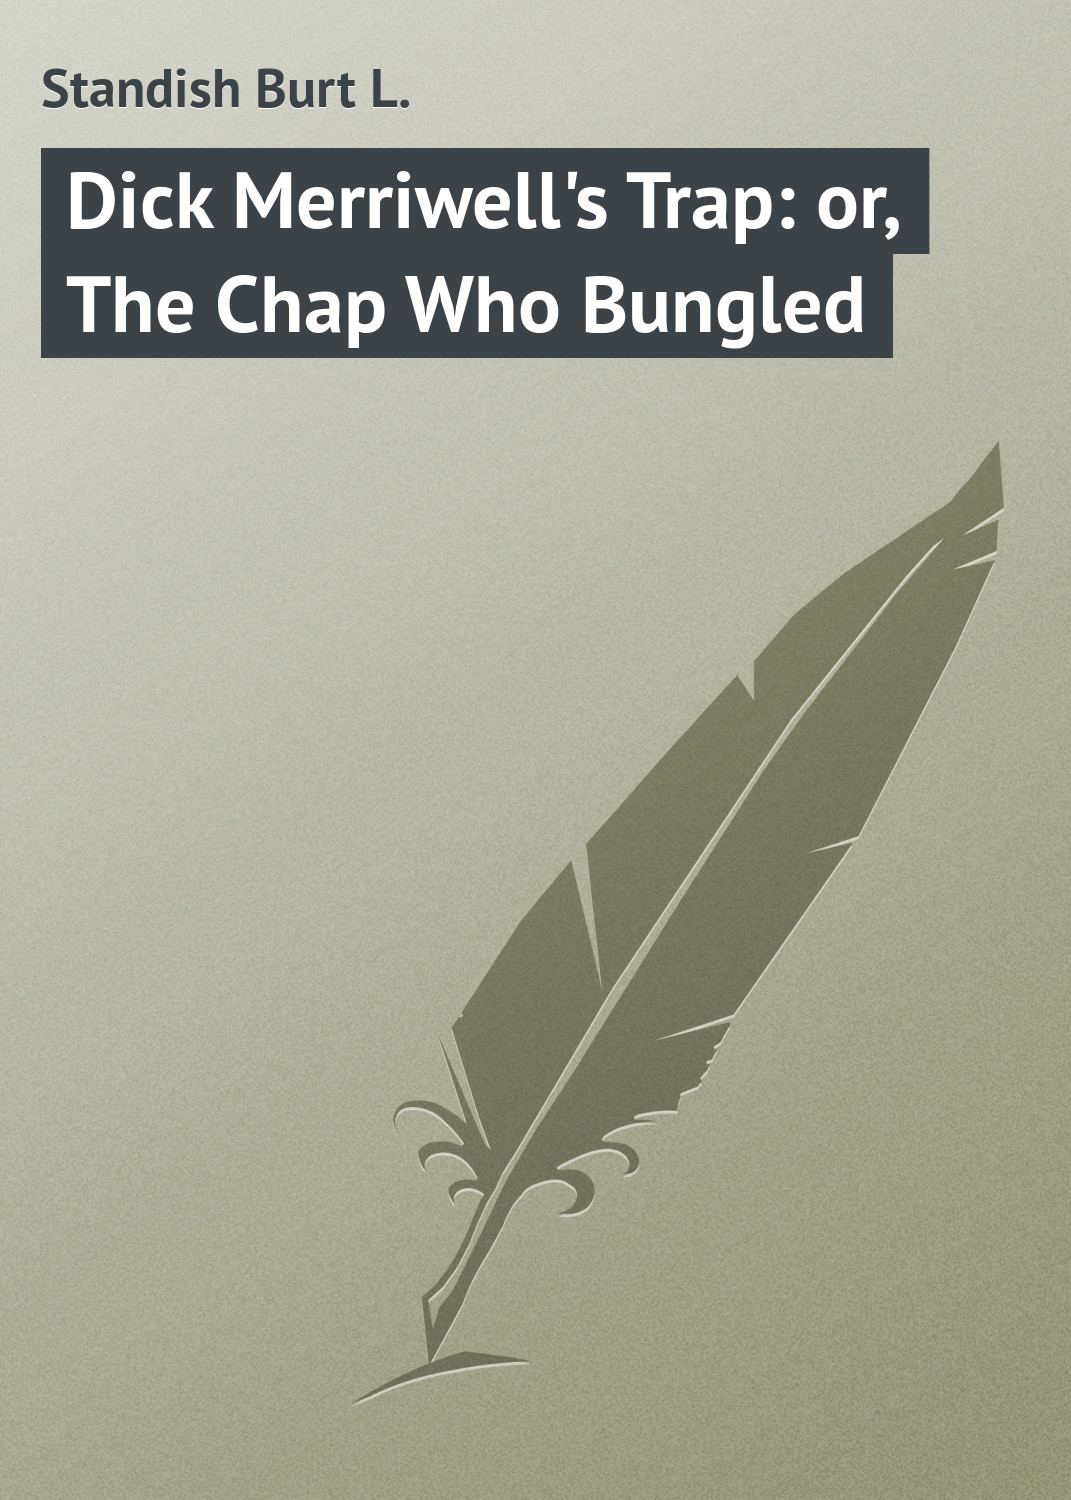 Dick Merriwell's Trap: or, The Chap Who Bungled